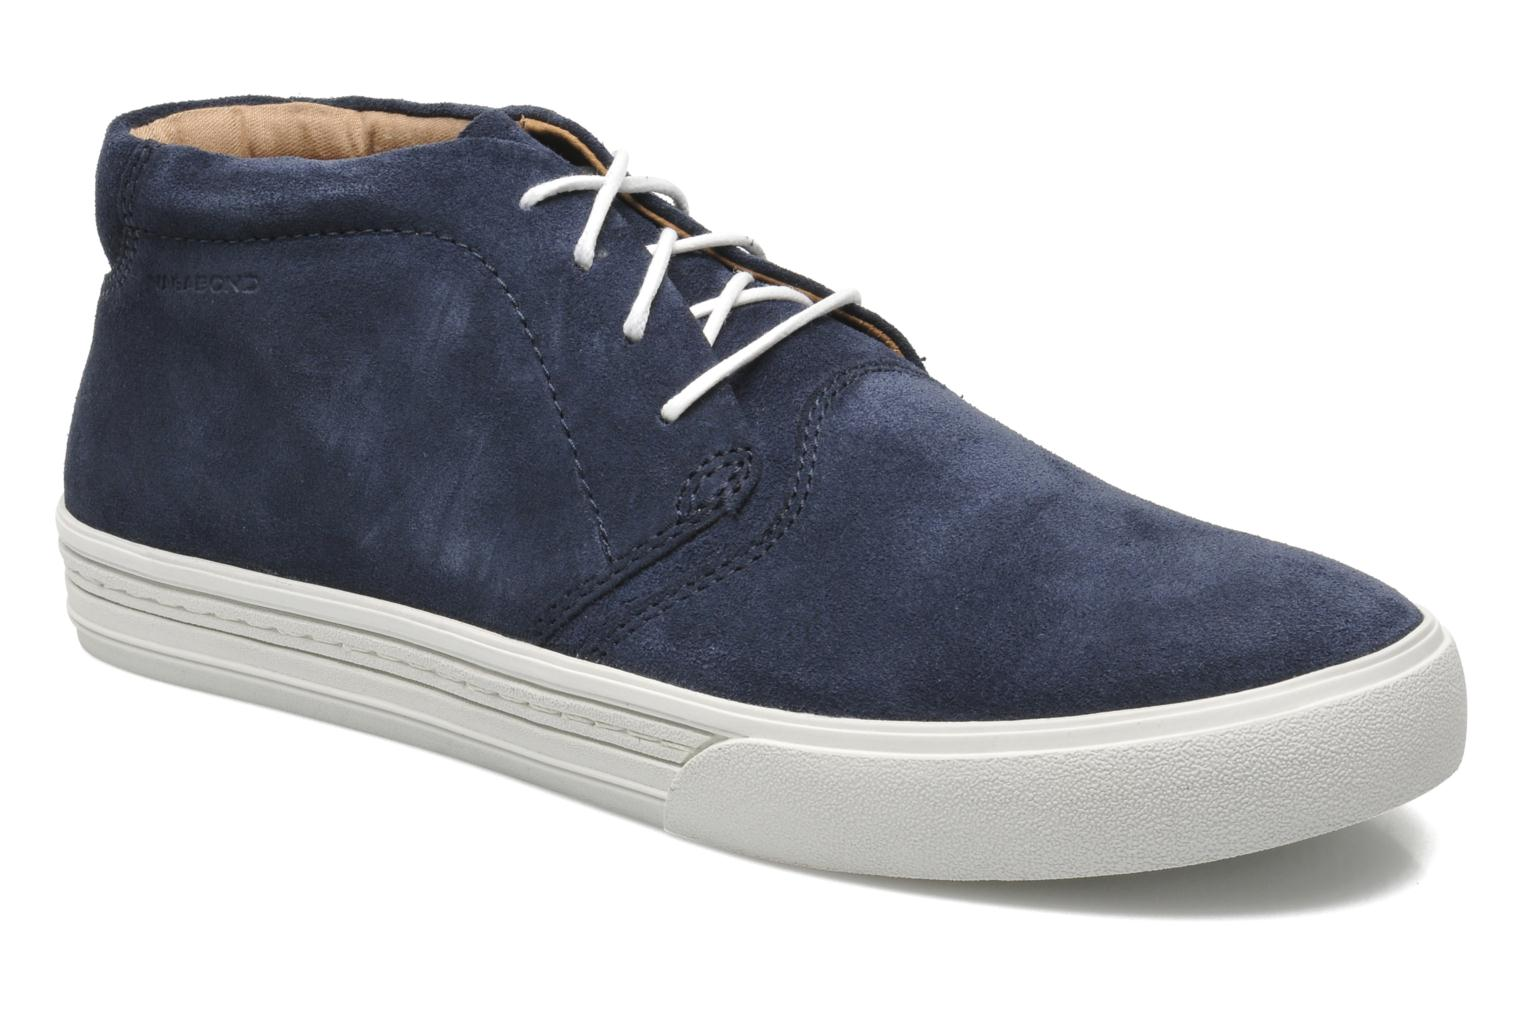 Sneakers PHILIP 3988-140 by Vagabond